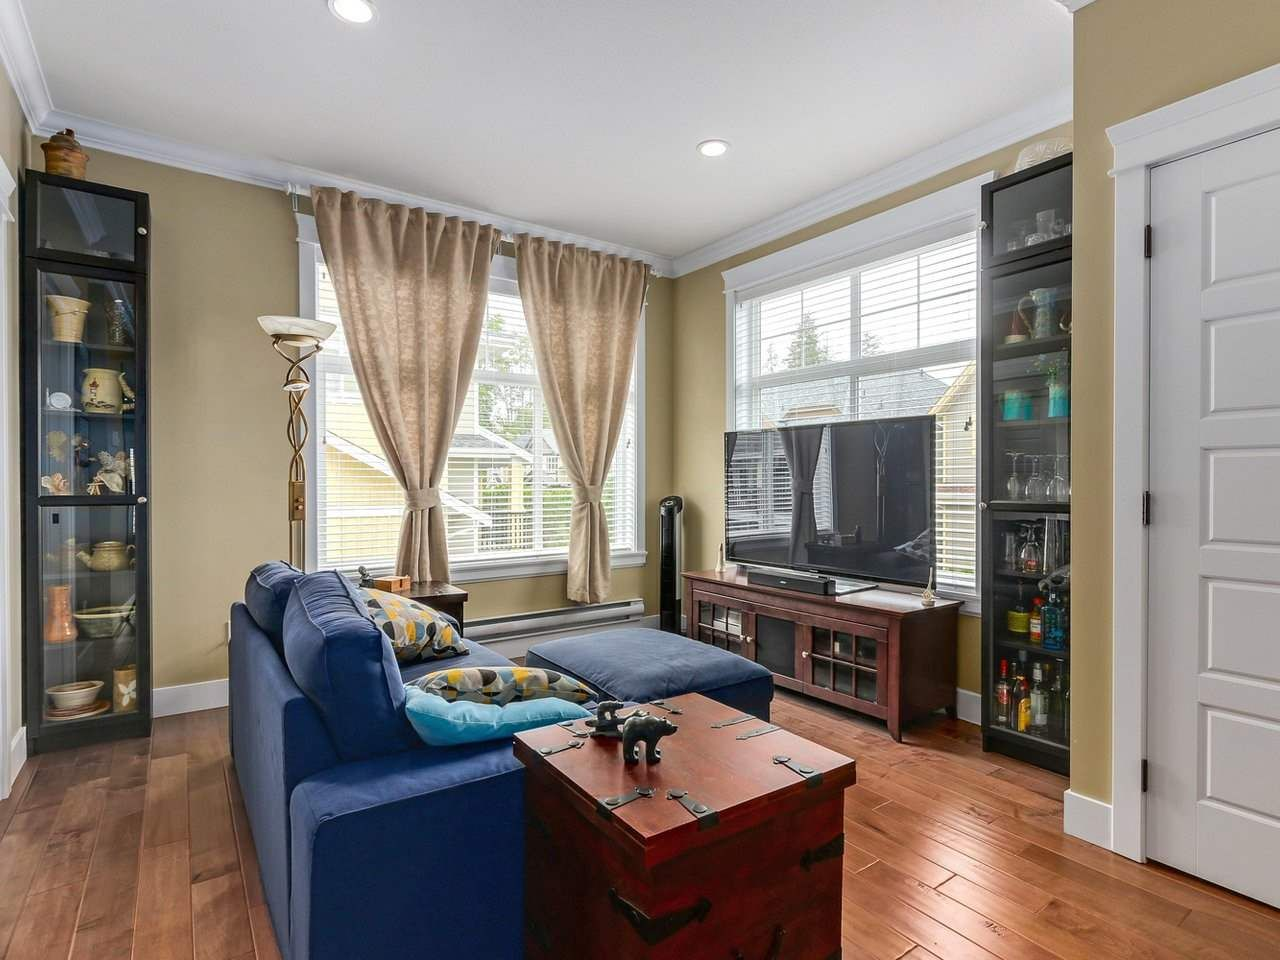 """Photo 8: Photos: 31 17171 2B Avenue in Surrey: Pacific Douglas Townhouse for sale in """"AUGUSTA TOWNHOUSES"""" (South Surrey White Rock)  : MLS®# R2280398"""